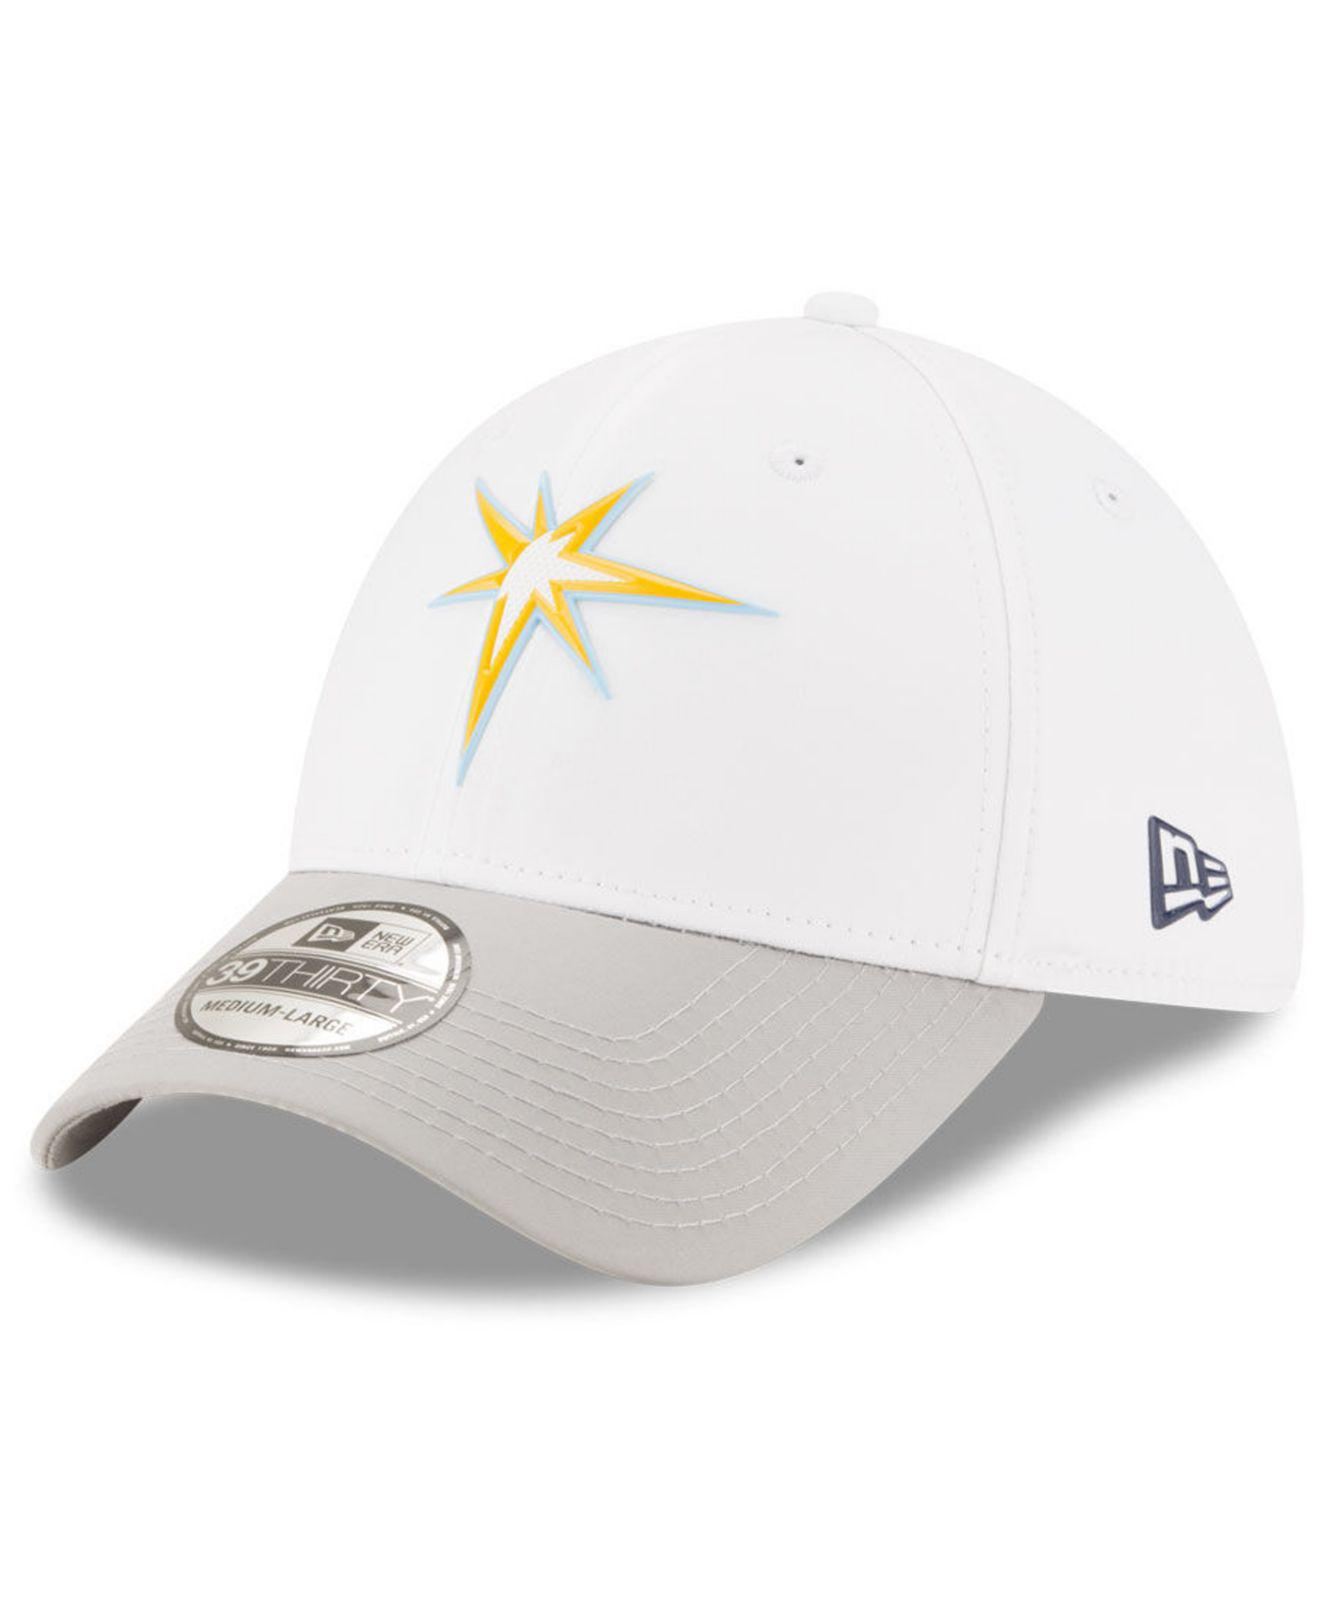 online retailer 610c3 a12d4 ... usa ktz tampa bay rays white batting practice 39thirty cap for men lyst.  view fullscreen